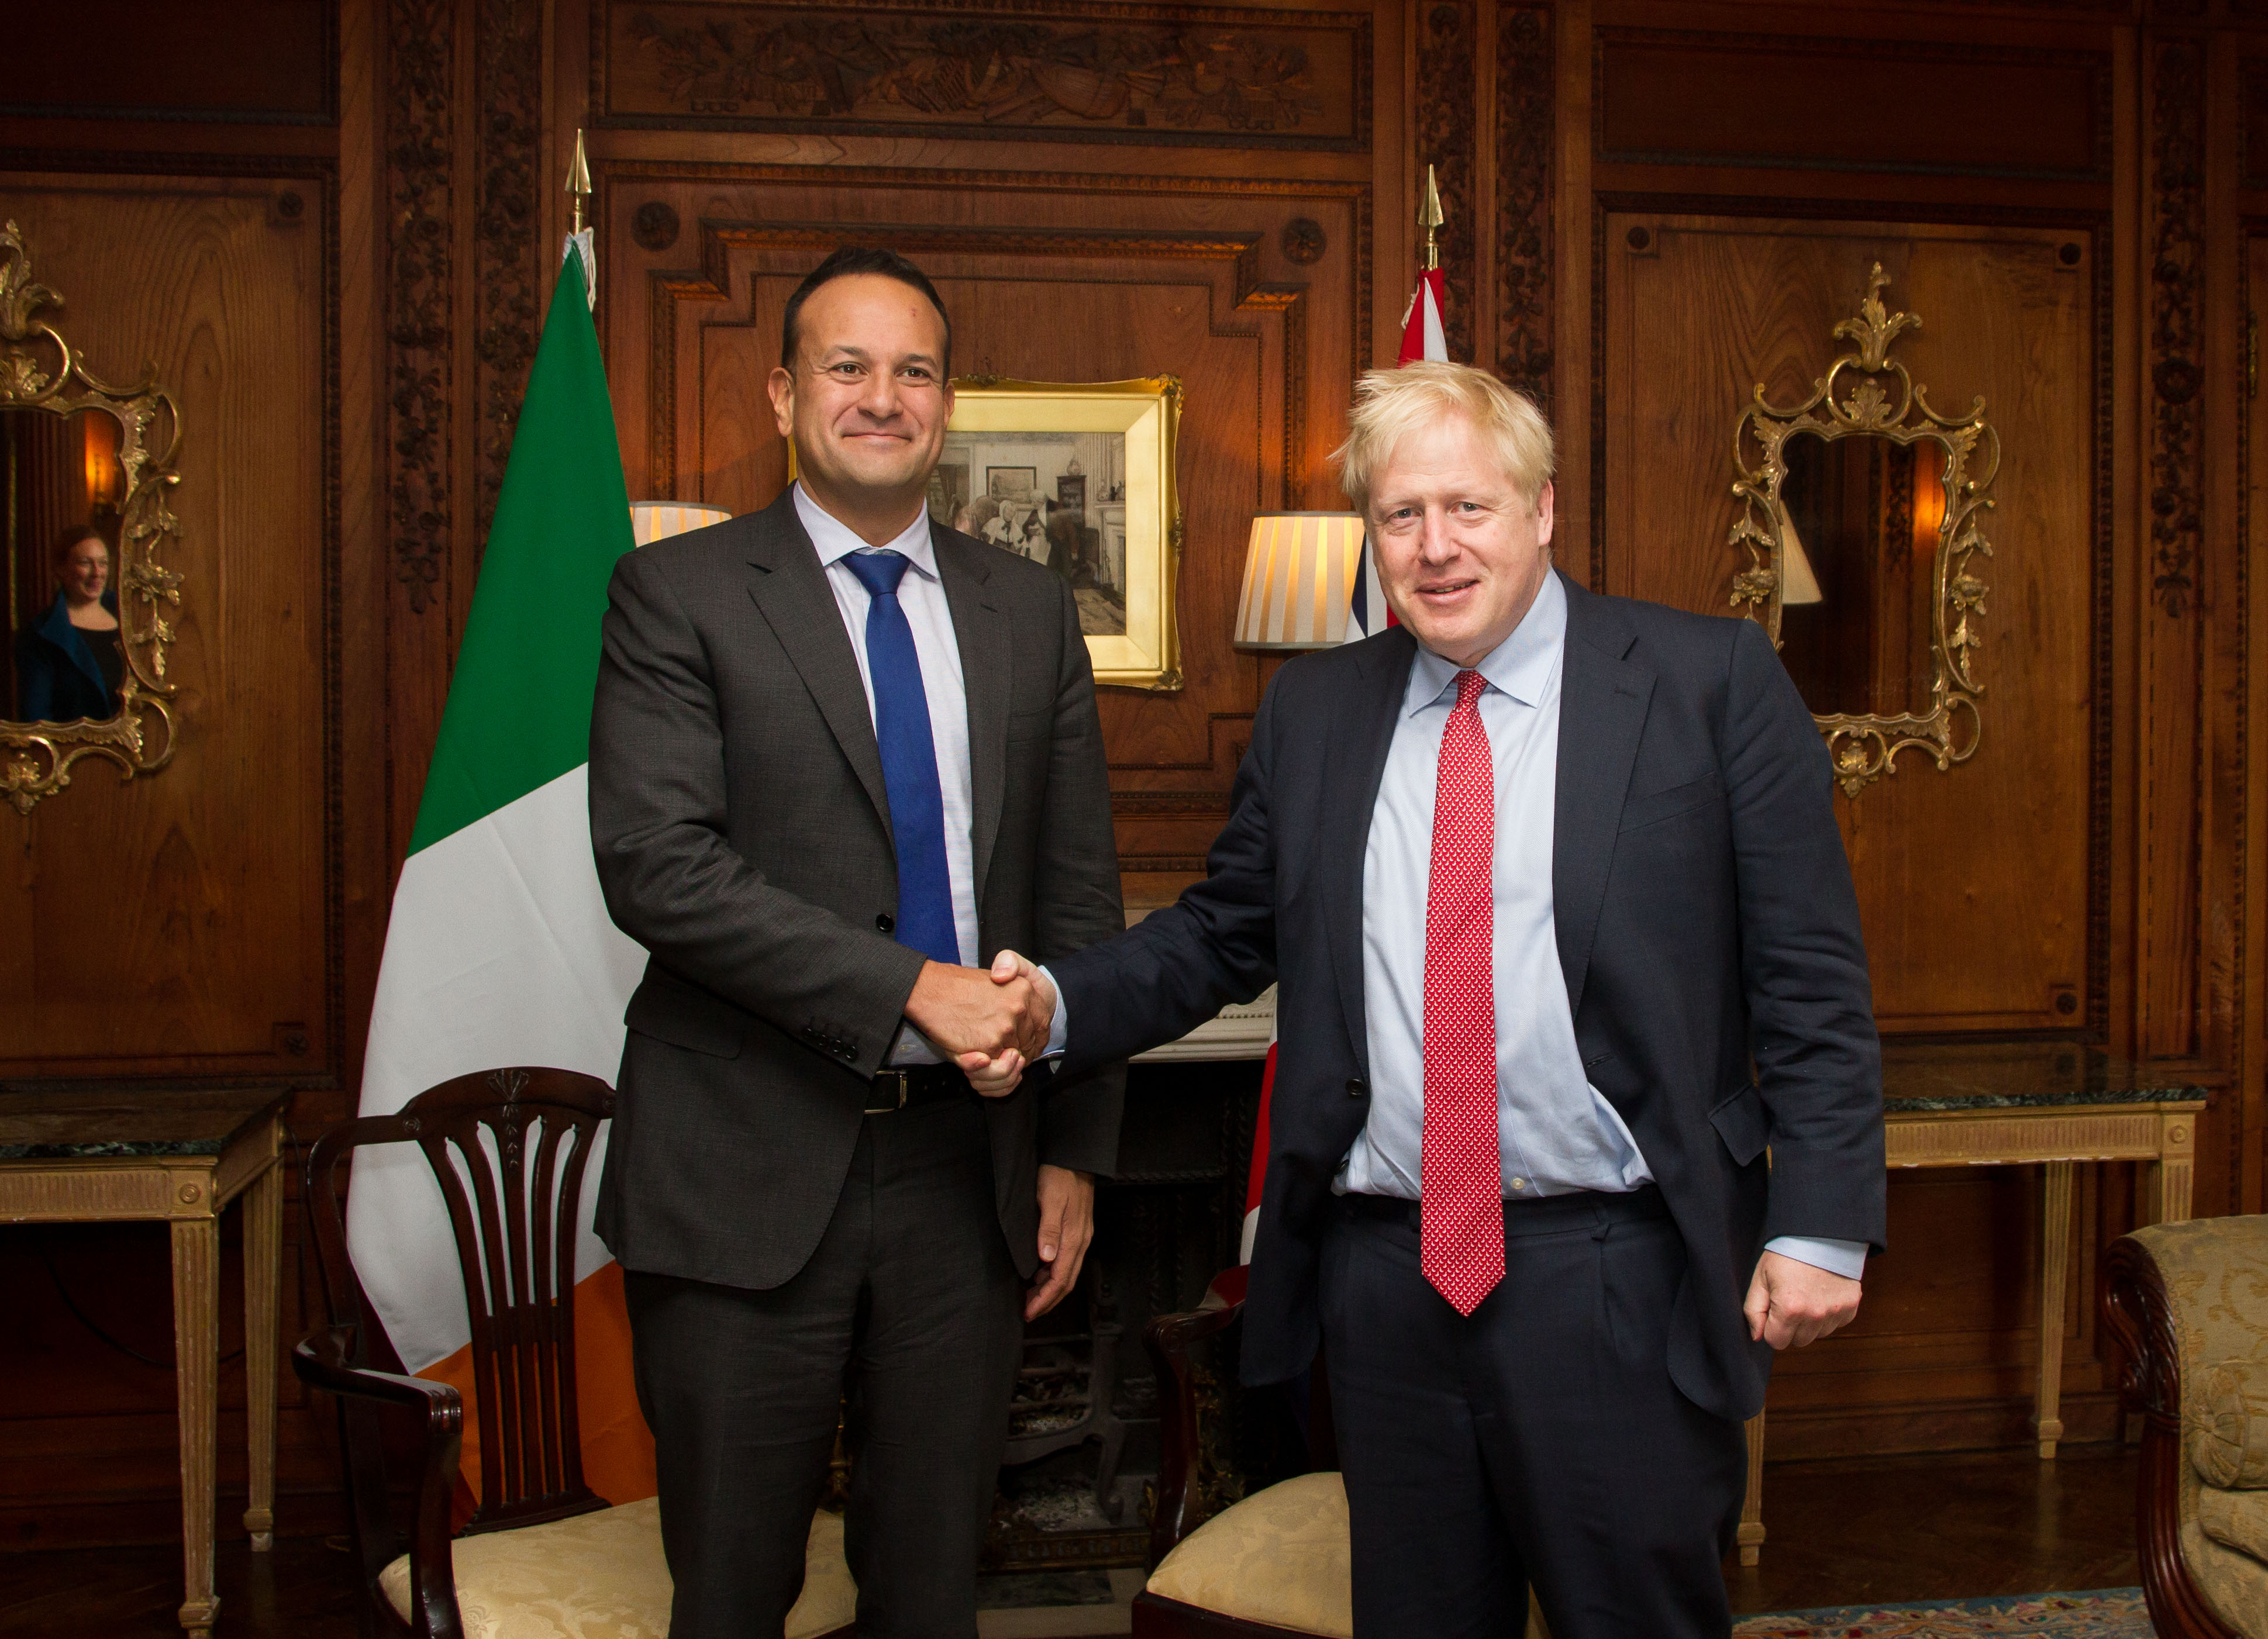 Taoiseach and PM of UK